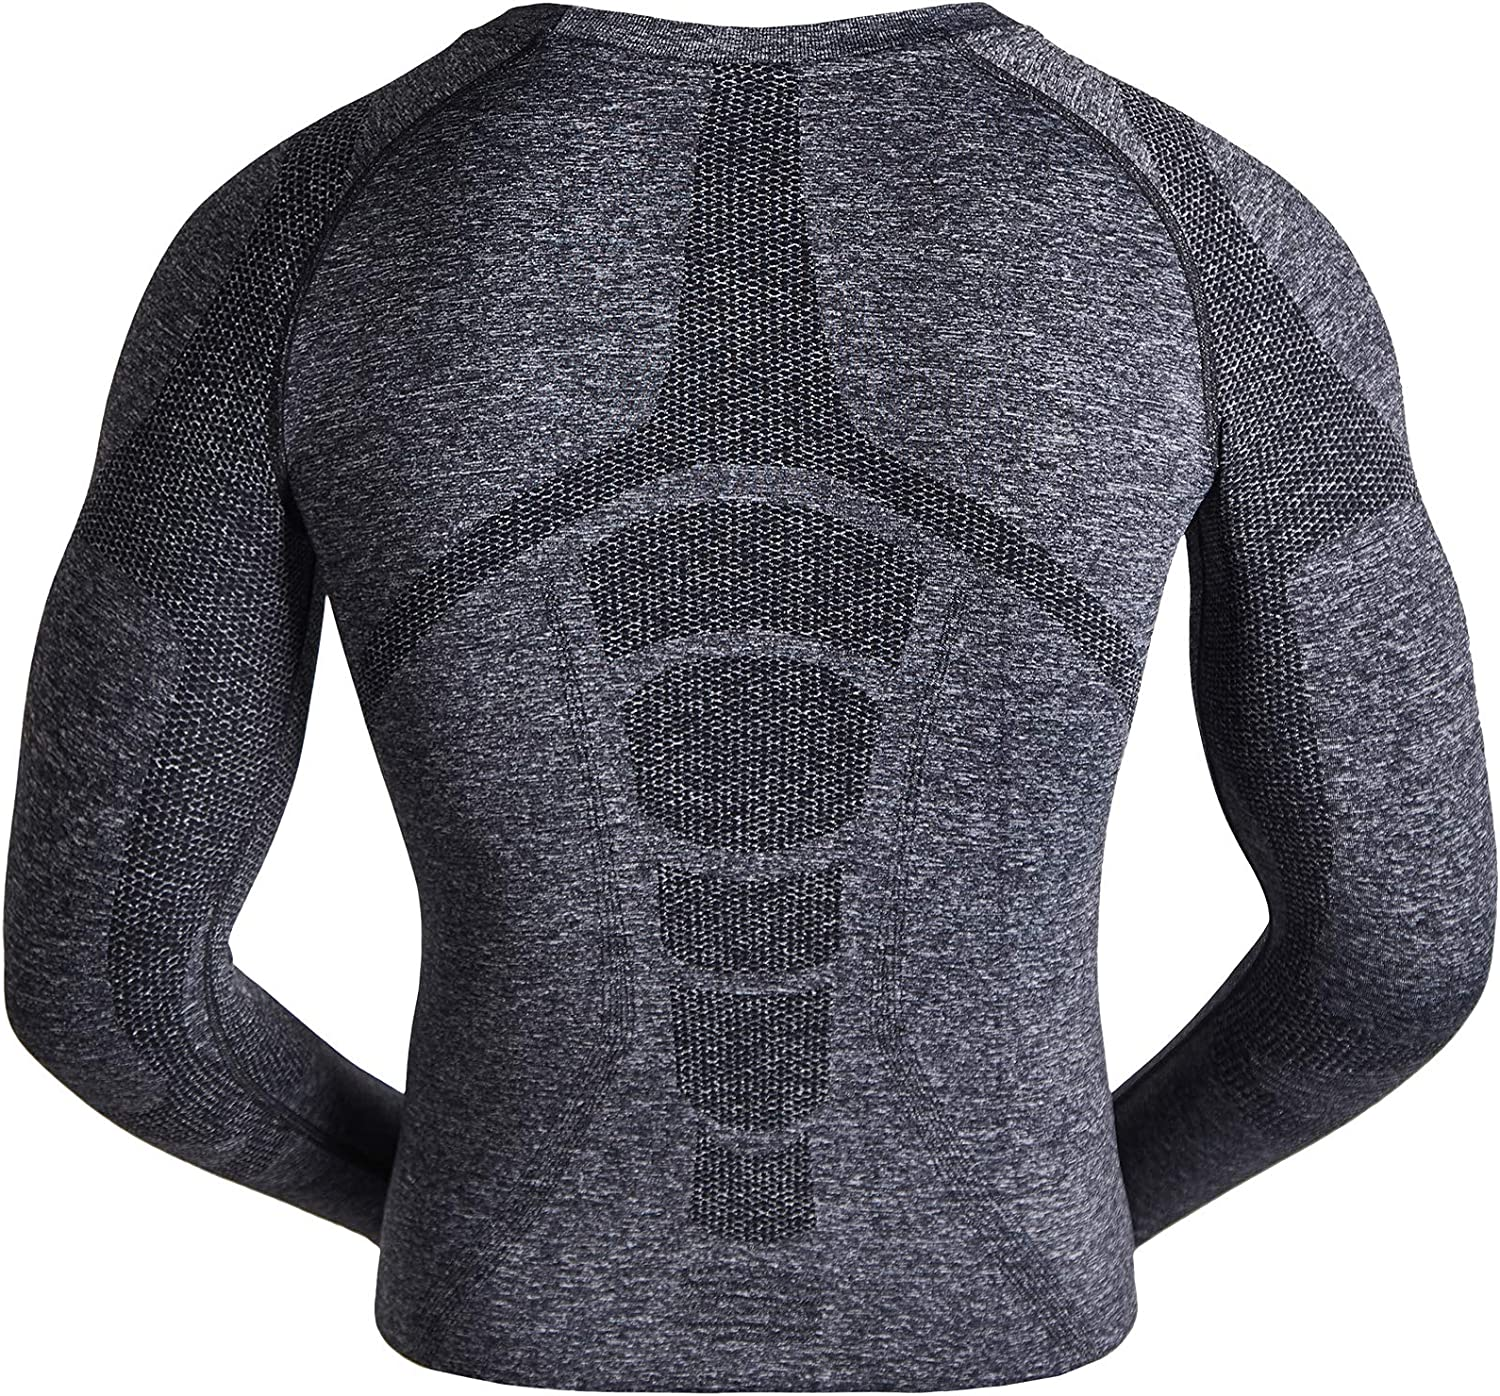 DREAMYOGA Boys Girls Thermal Long Sleeve Tops Fleece Lined Compression Base Layer Shirts Underwear Crew Neck